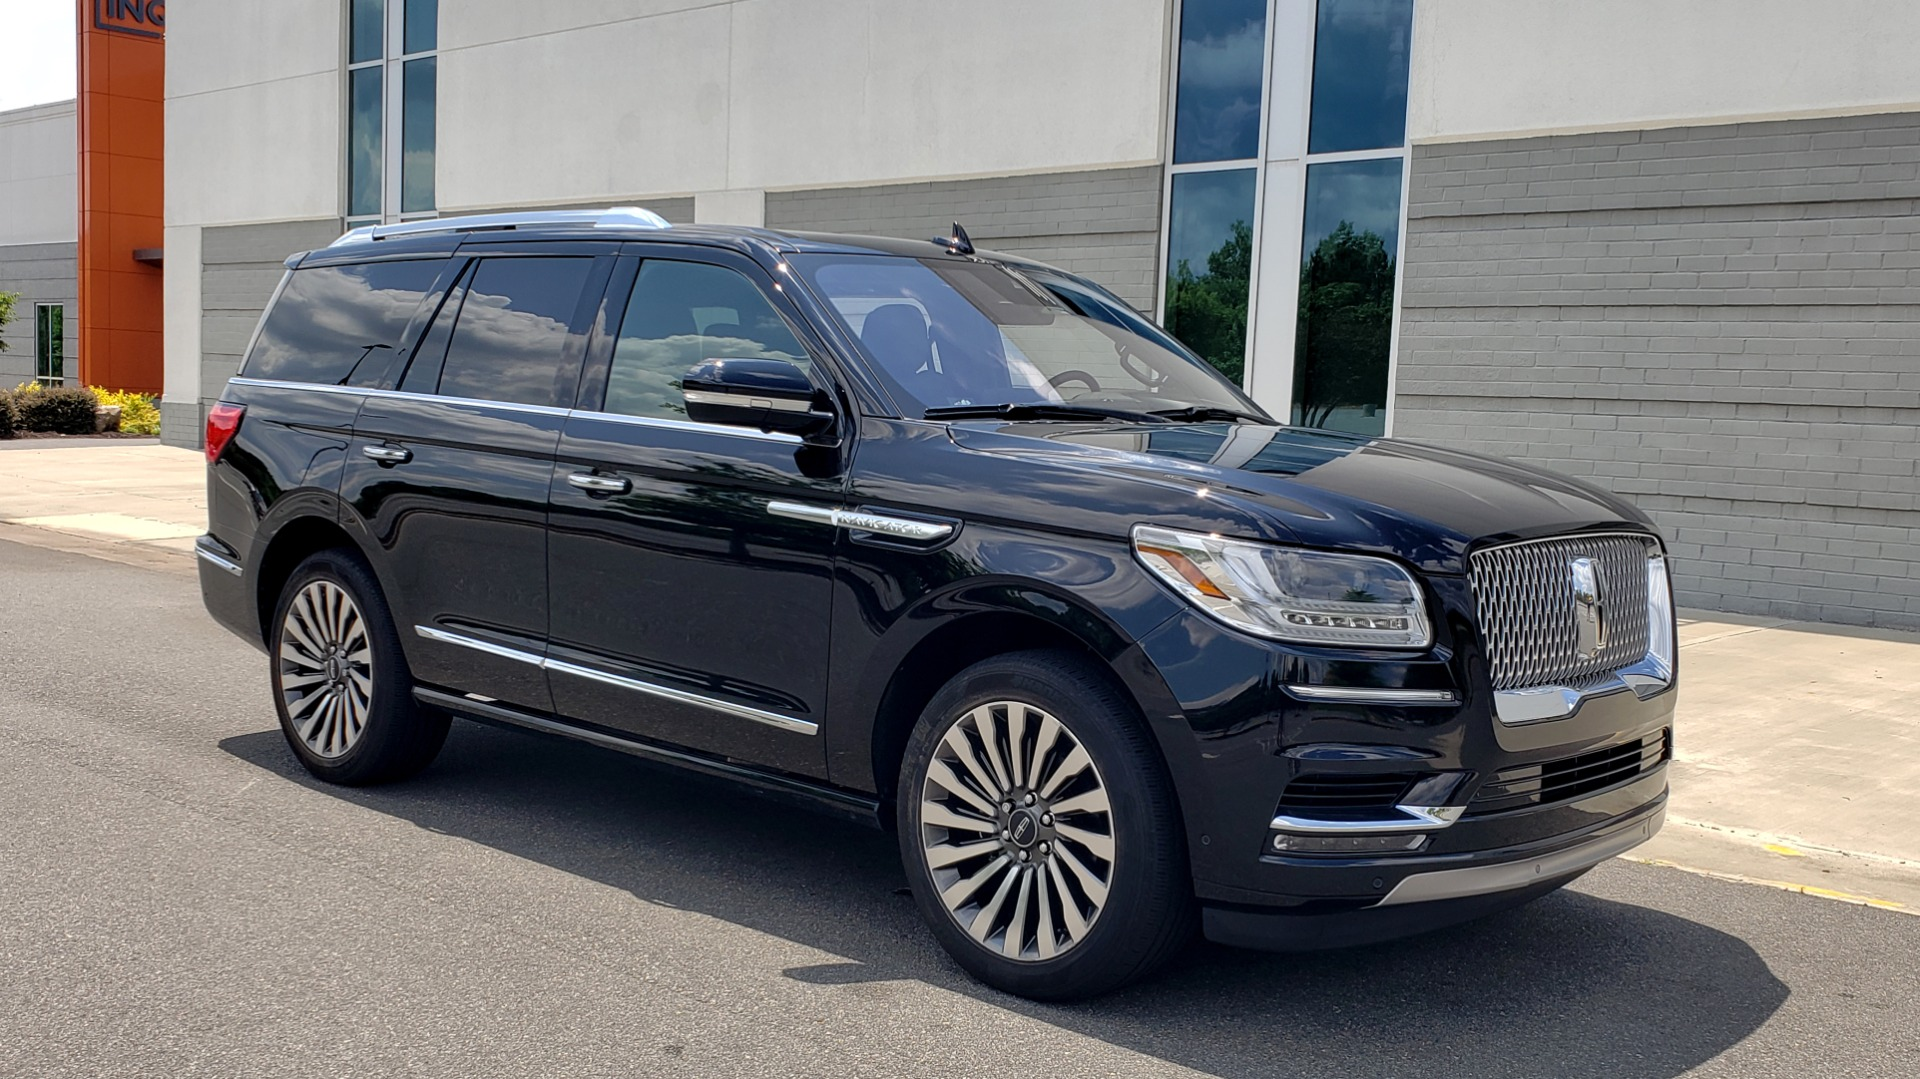 Used 2019 Lincoln NAVIGATOR RESERVE 4X4 / NAV / PANO-ROOF / REVEL ULTIMA AUDIO / 3-ROW / REARVIEW for sale $74,795 at Formula Imports in Charlotte NC 28227 7